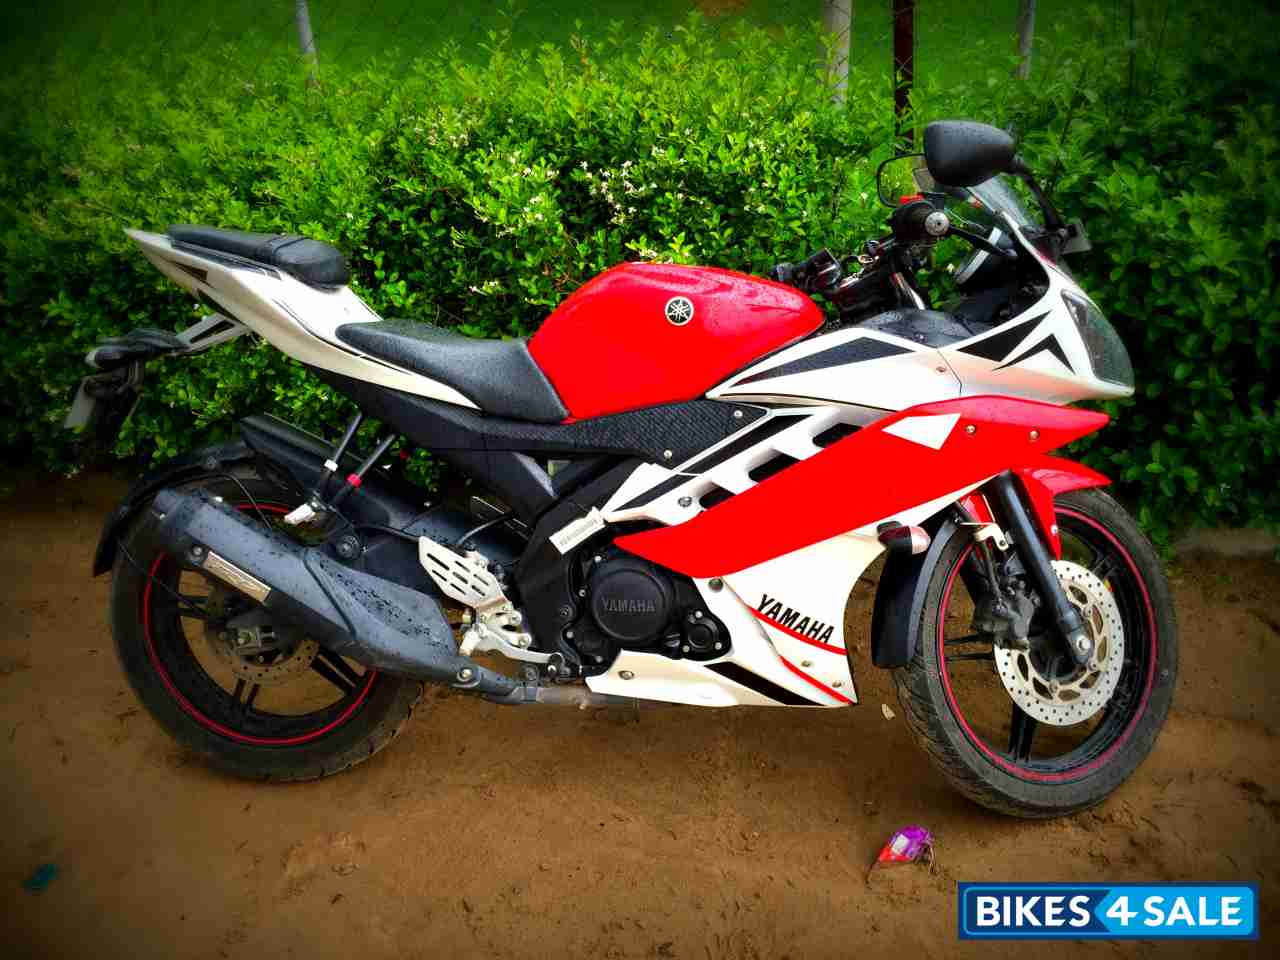 R15 V2 Red And White Customized Whit...